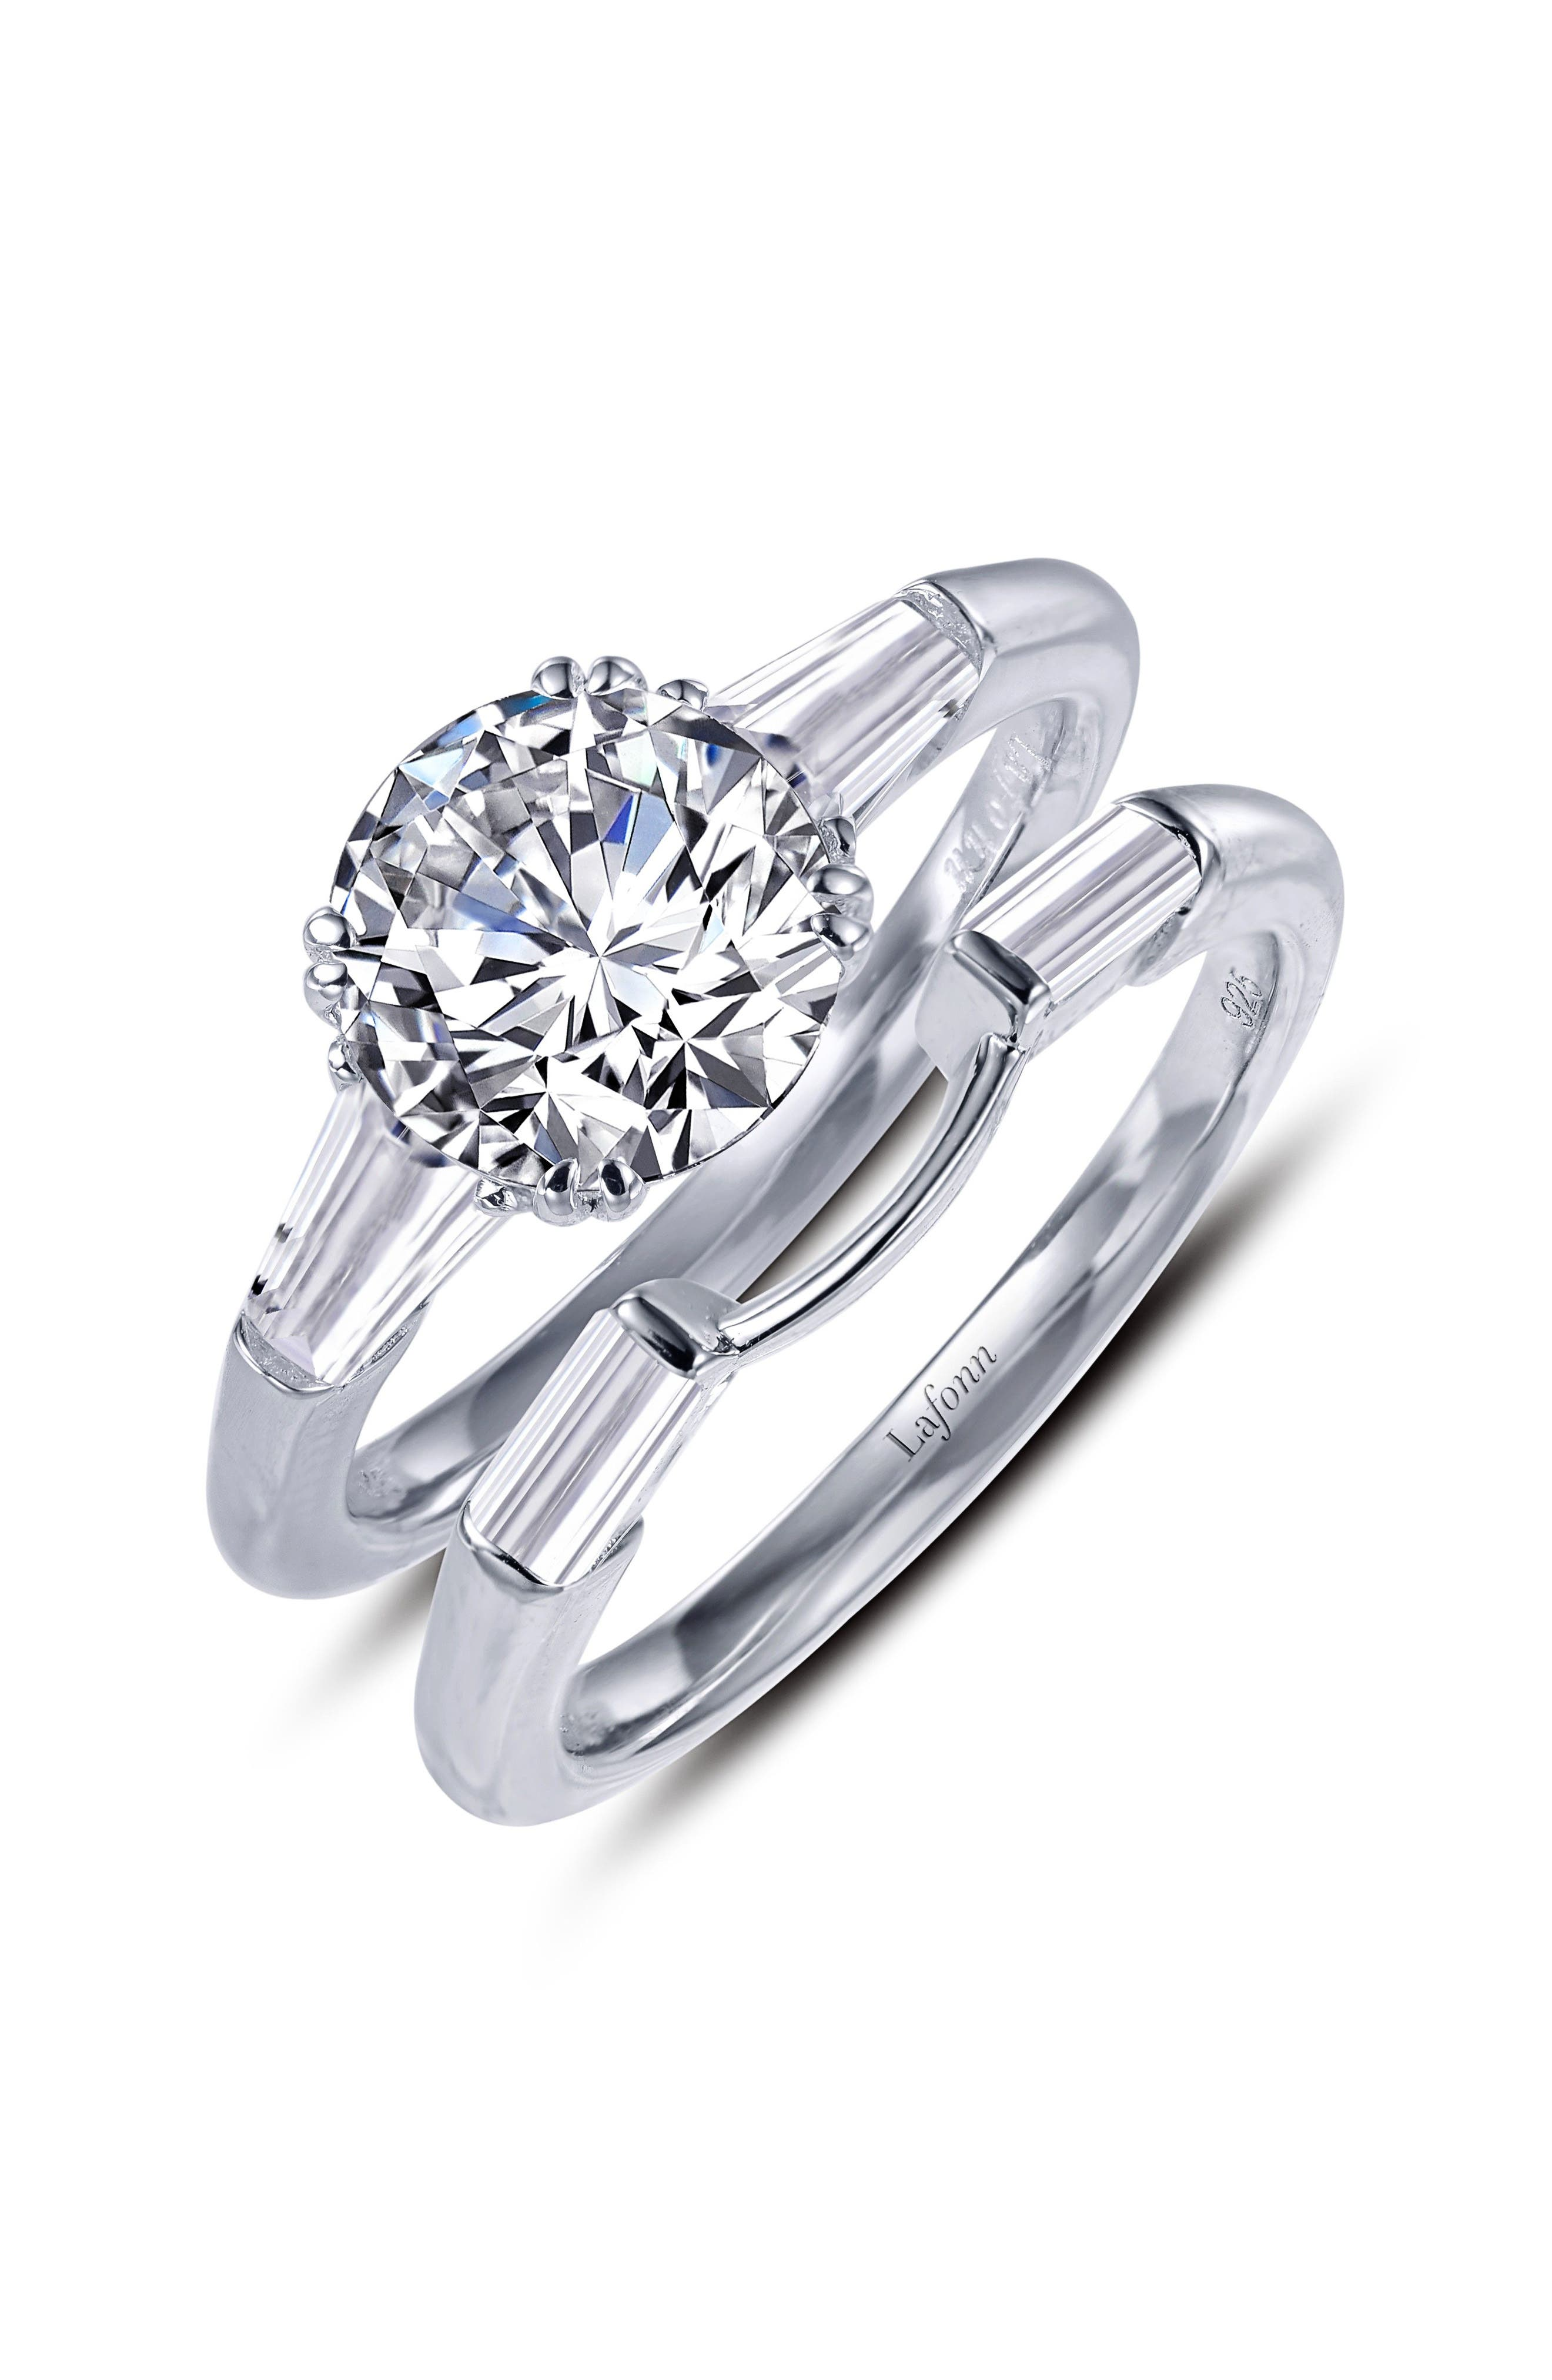 3-Stone Ring,                             Alternate thumbnail 2, color,                             Silver/ Clear